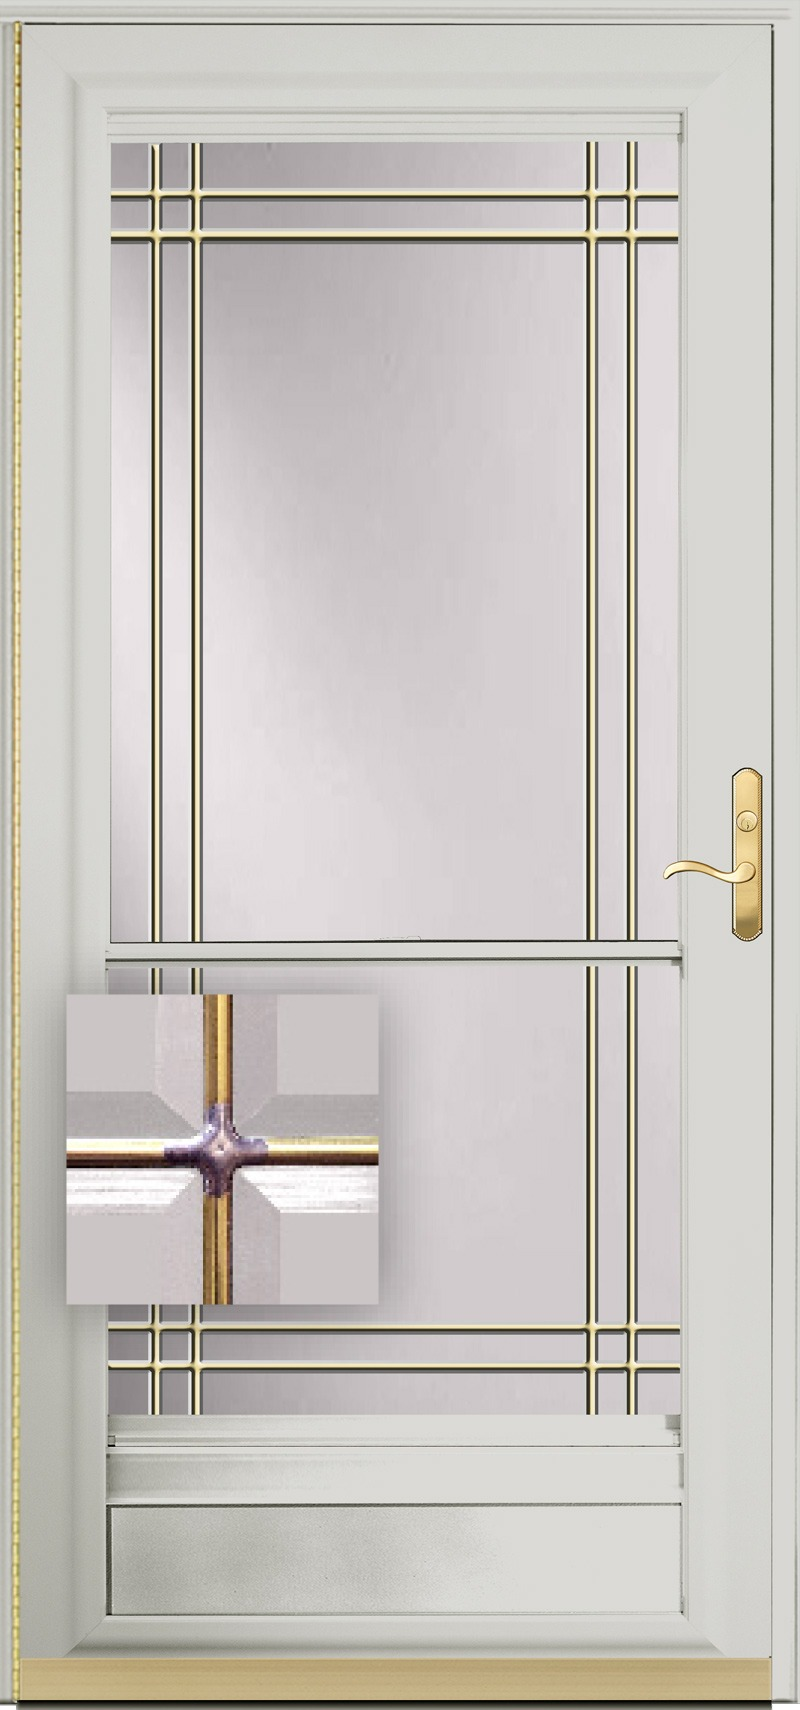 A white door with etched glass and metal inlay